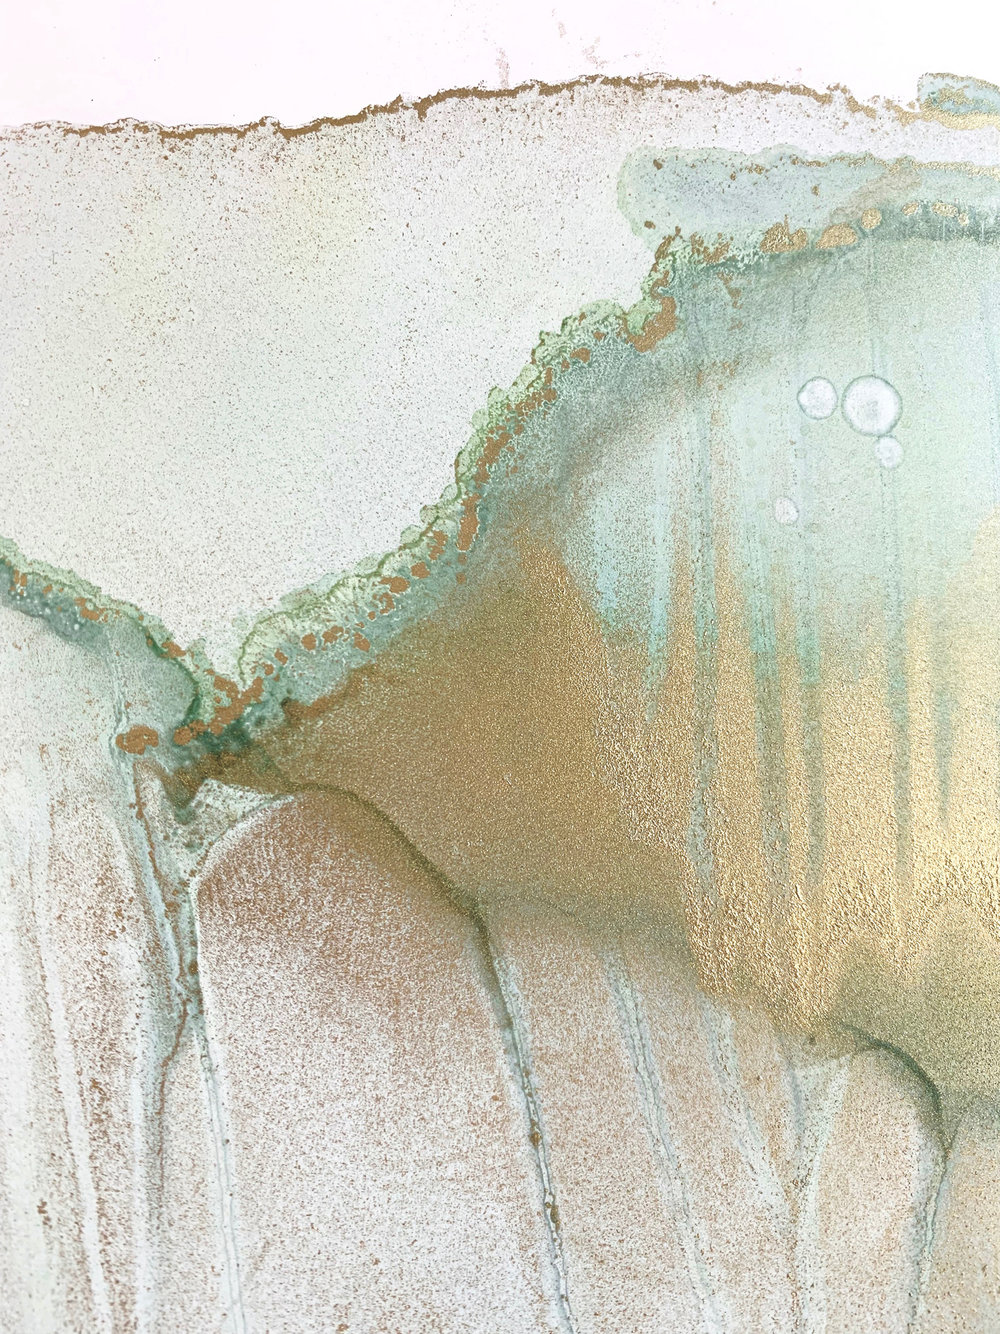 Copy of Origin #15, detail